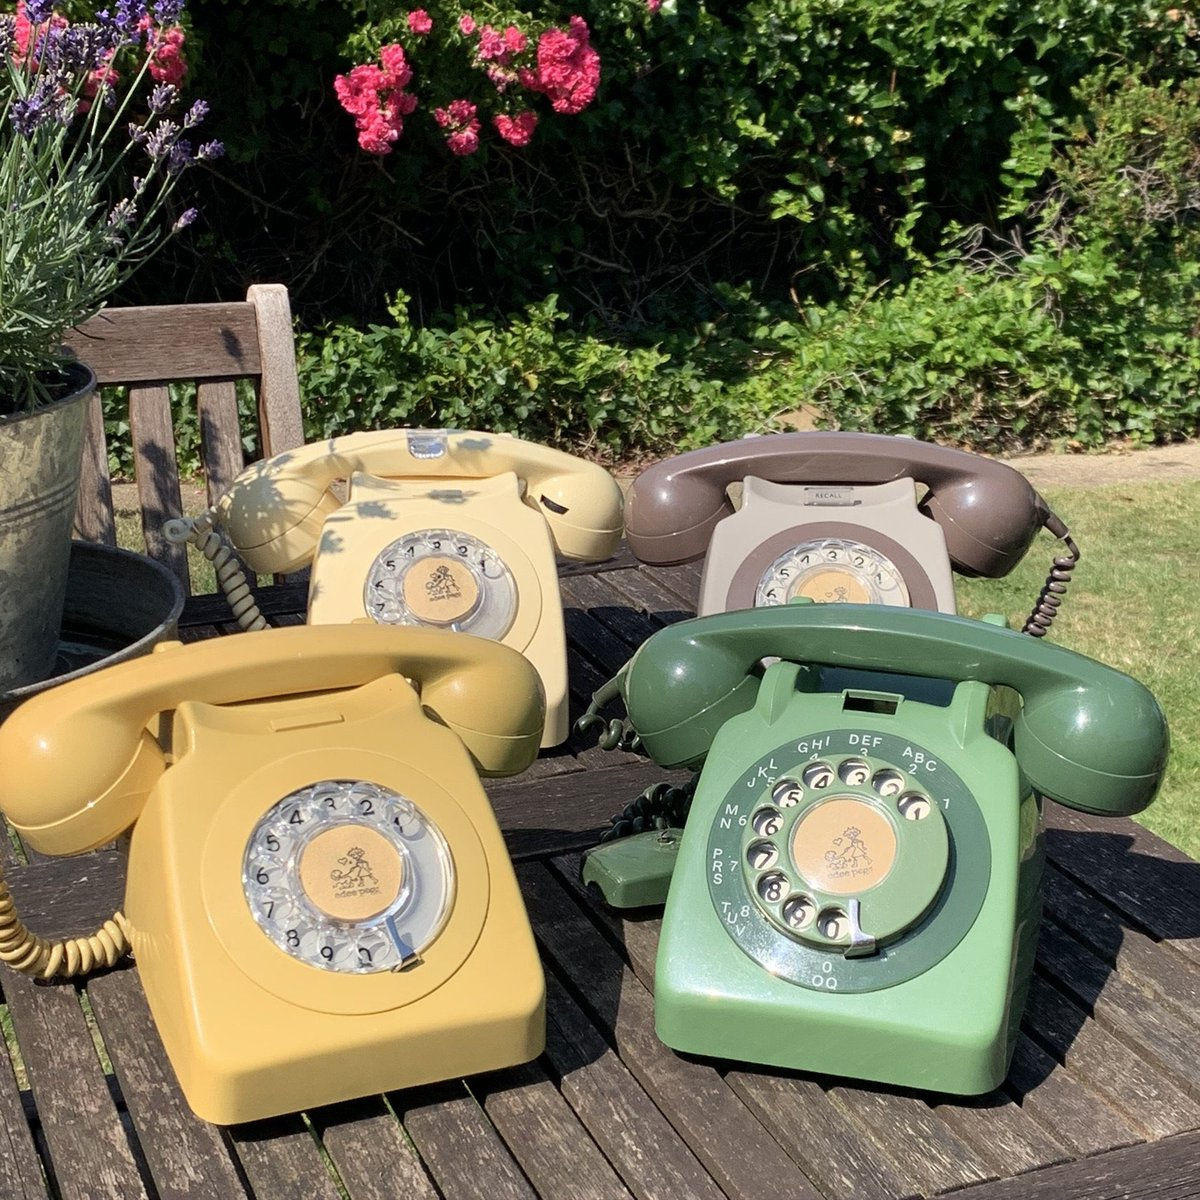 Excited to share this item from my #etsy shop: Vintage Telephones 1970s Grey Cream Yellow and Green Dial Phones https://etsy.me/2YY0wEgpic.twitter.com/RUBvOxHfWN  by Edie Pegg